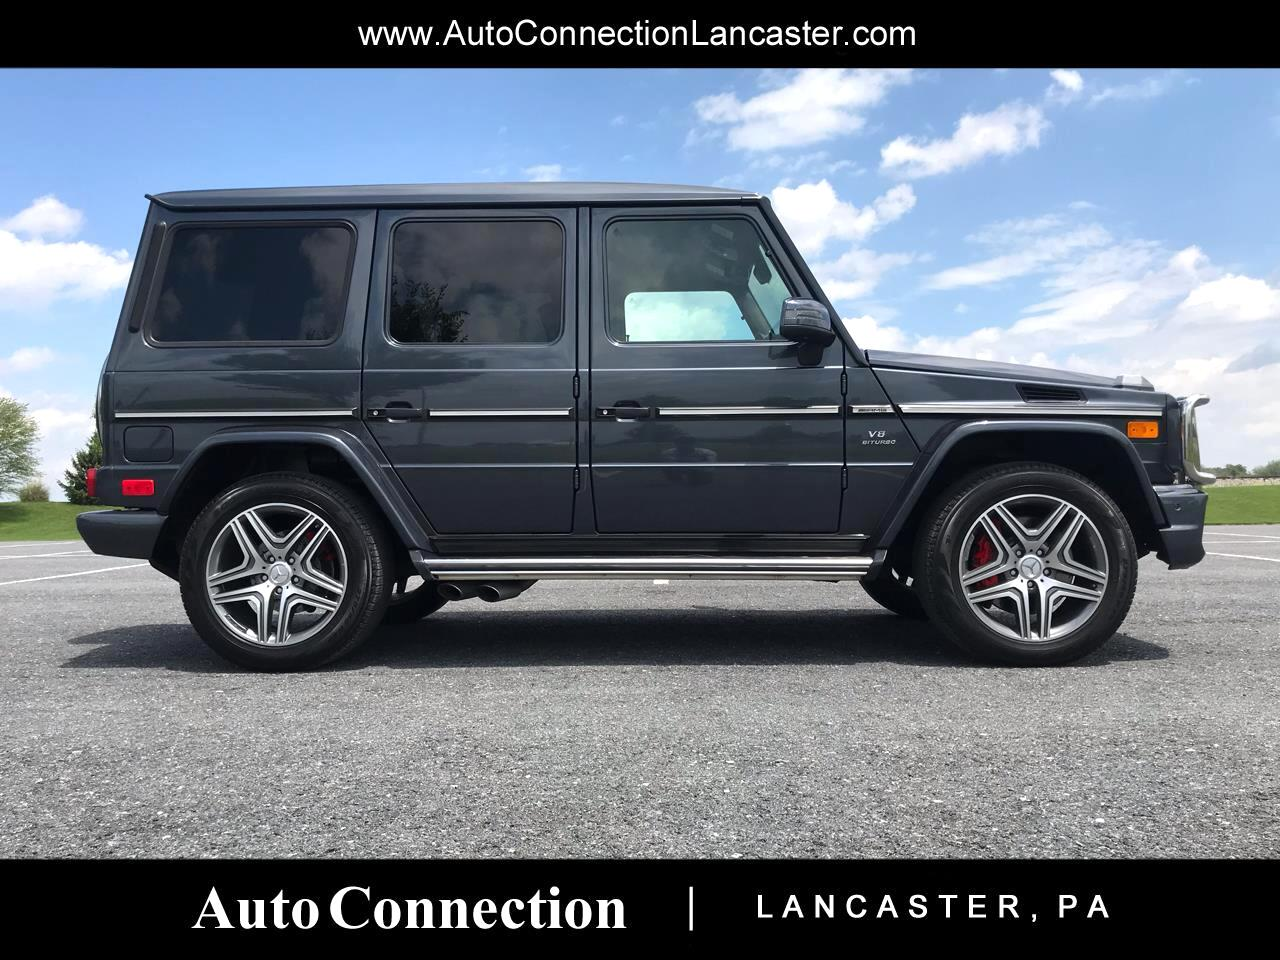 Used Cars For Sale Lancaster Pa 17603 Auto Connection Of Lancaster